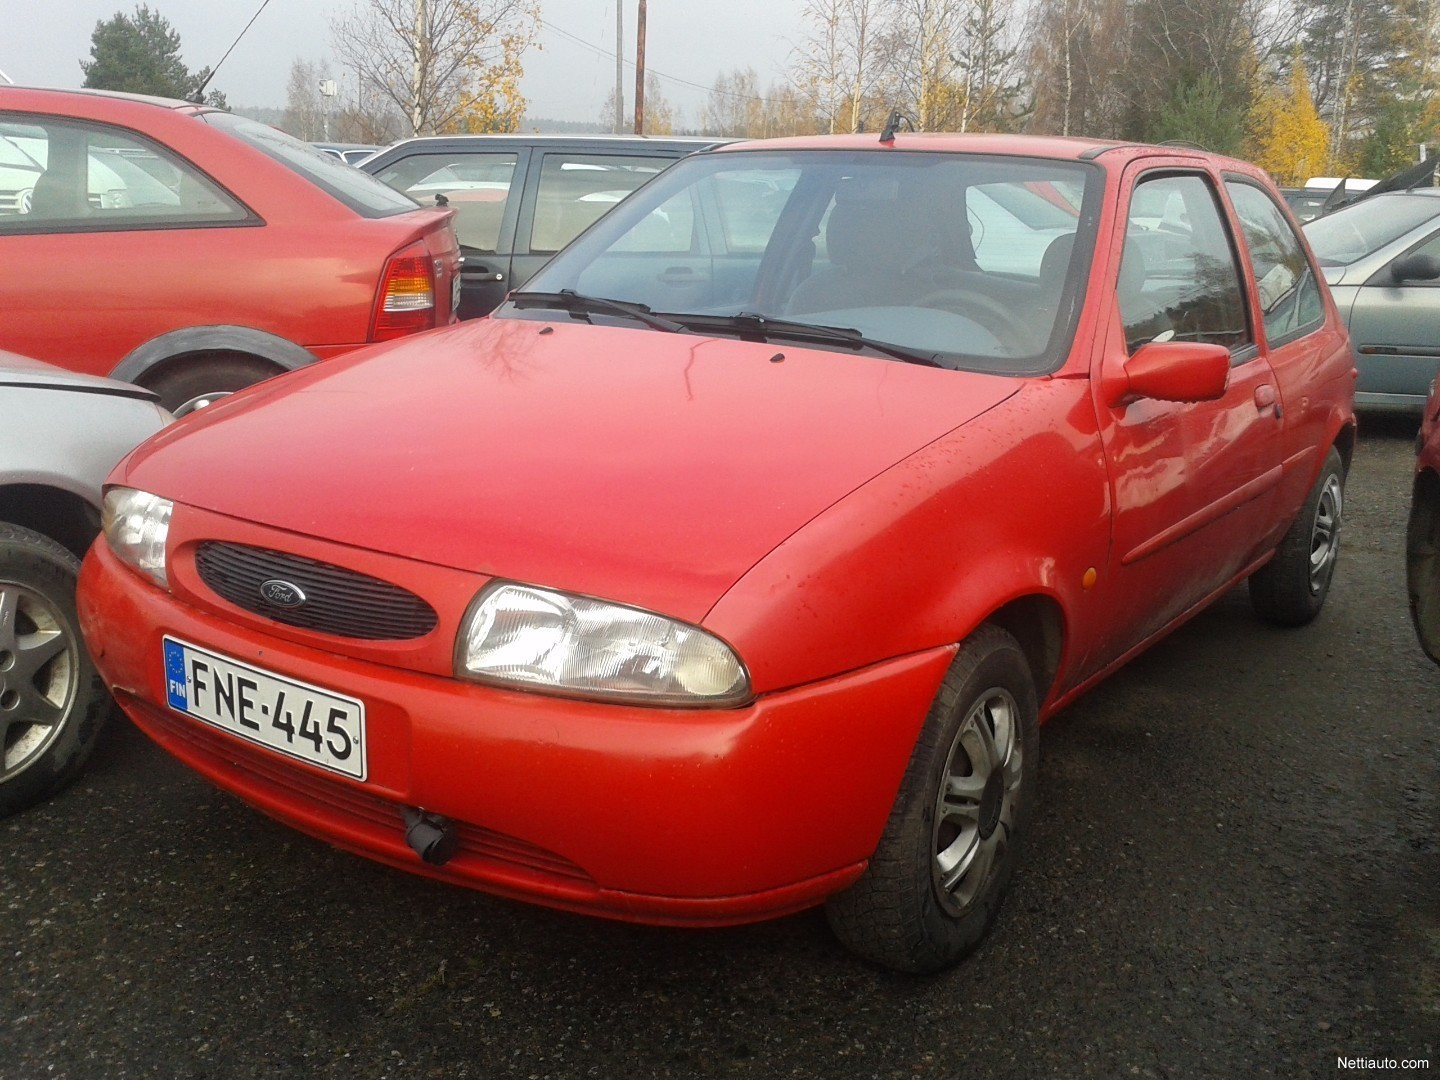 Ford Fiesta 12i 3d Automaatti Hatchback 1997 Used Vehicle Nettiauto 2015 Tow Bars Enlarge Image